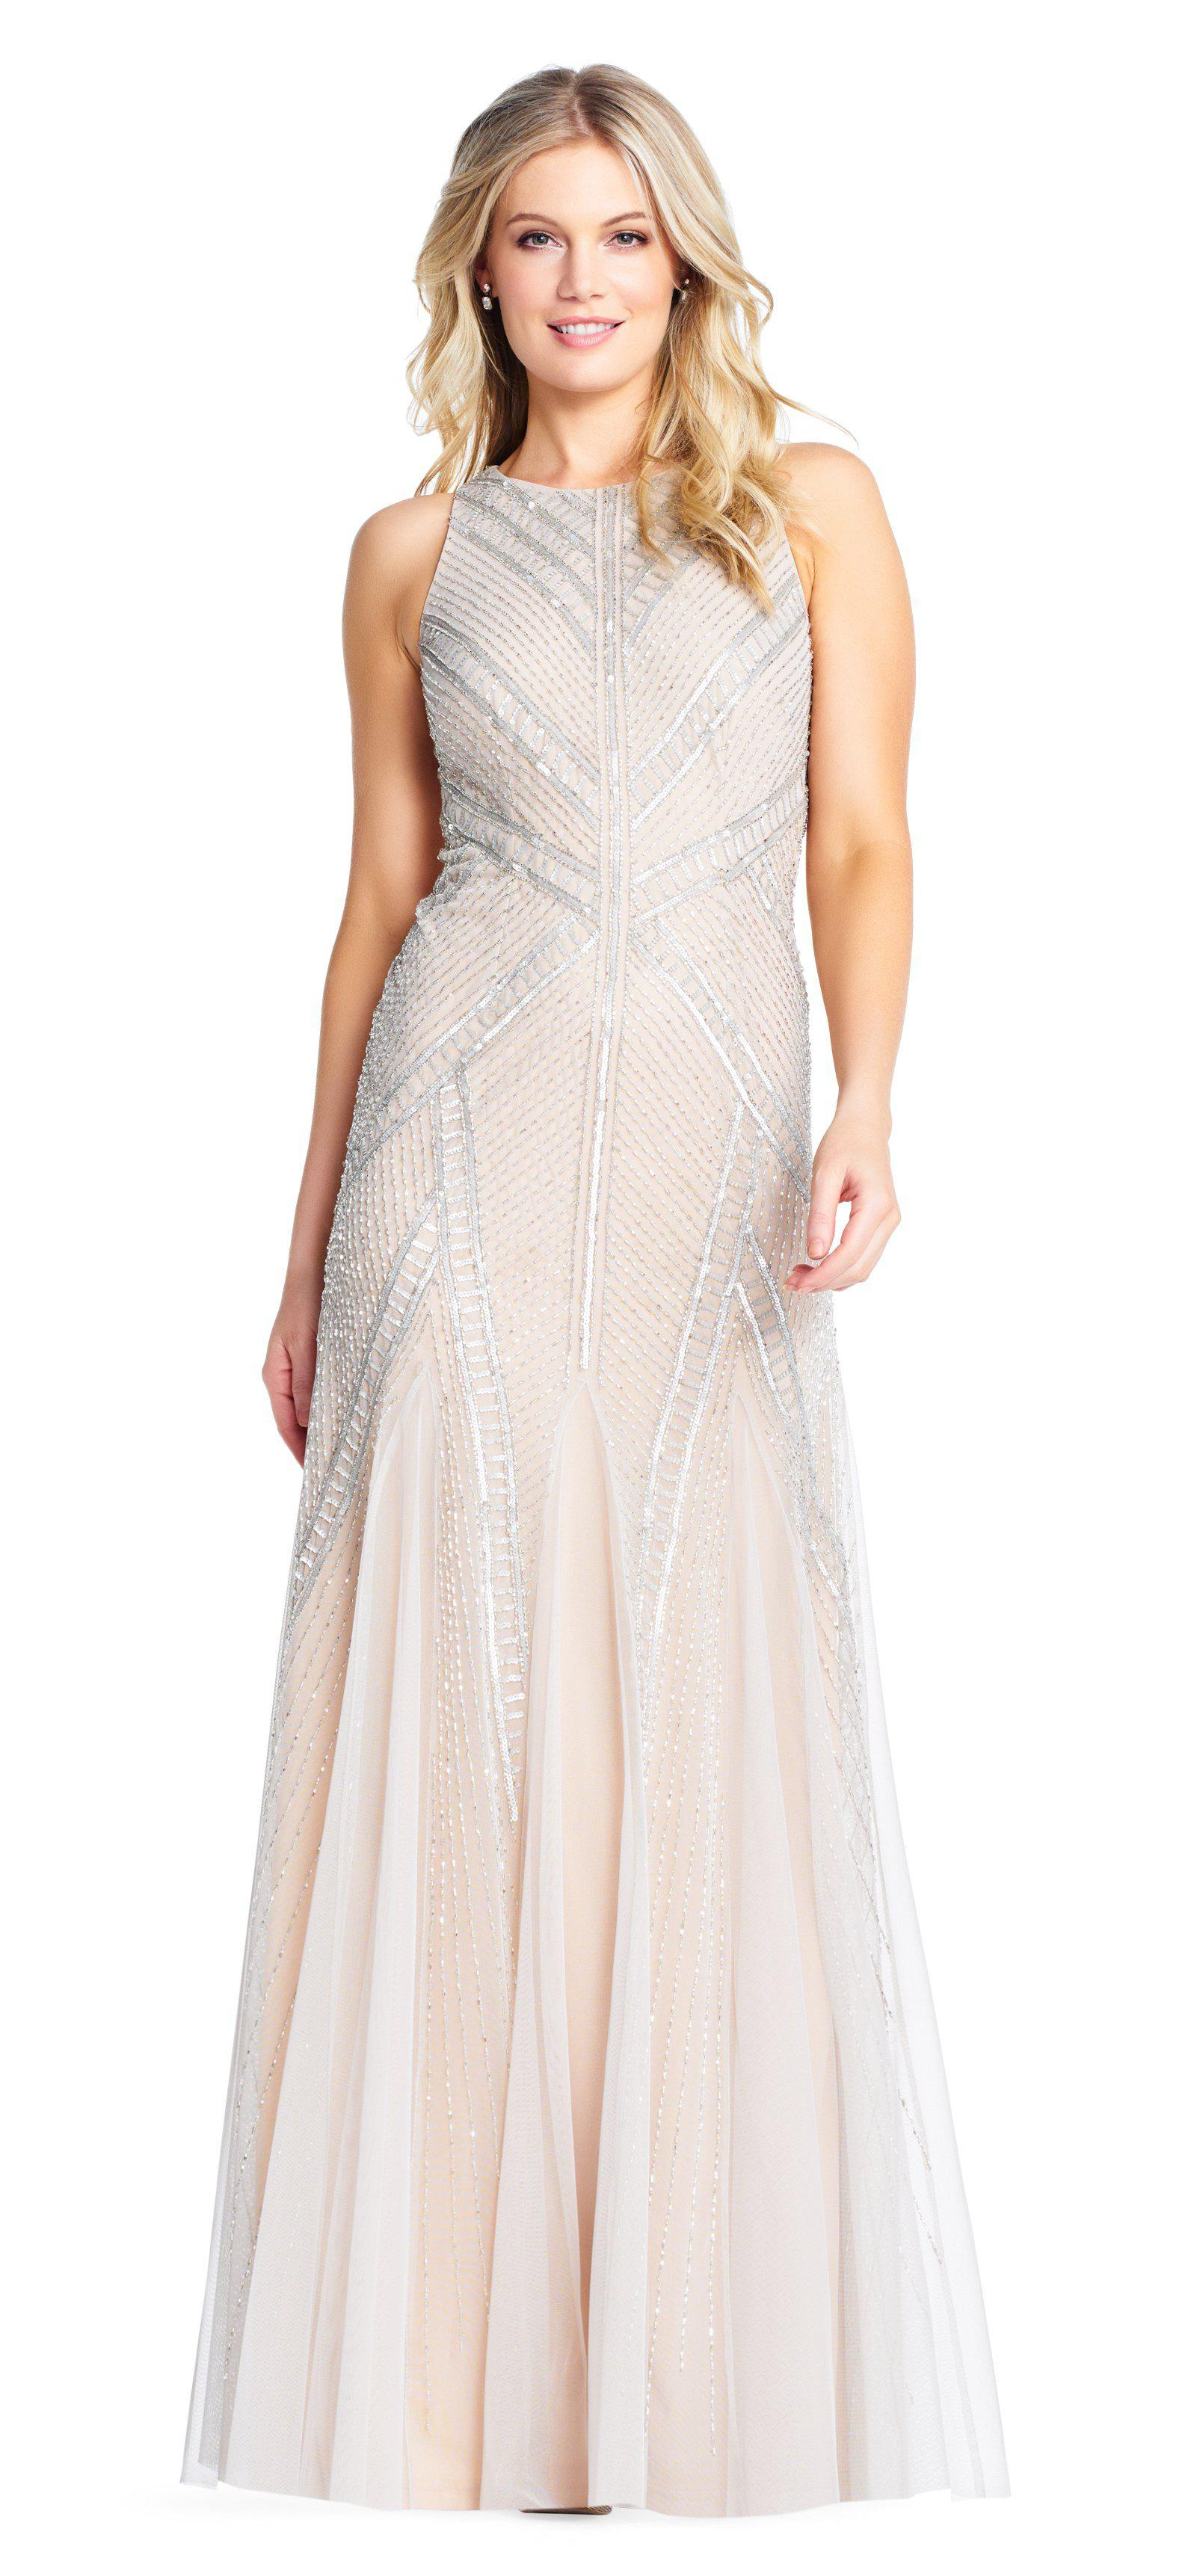 5fe23a4f Adrianna Papell - Multicolor Ap1e202951 Sequined Jewel Trumpet Dress -  Lyst. View fullscreen